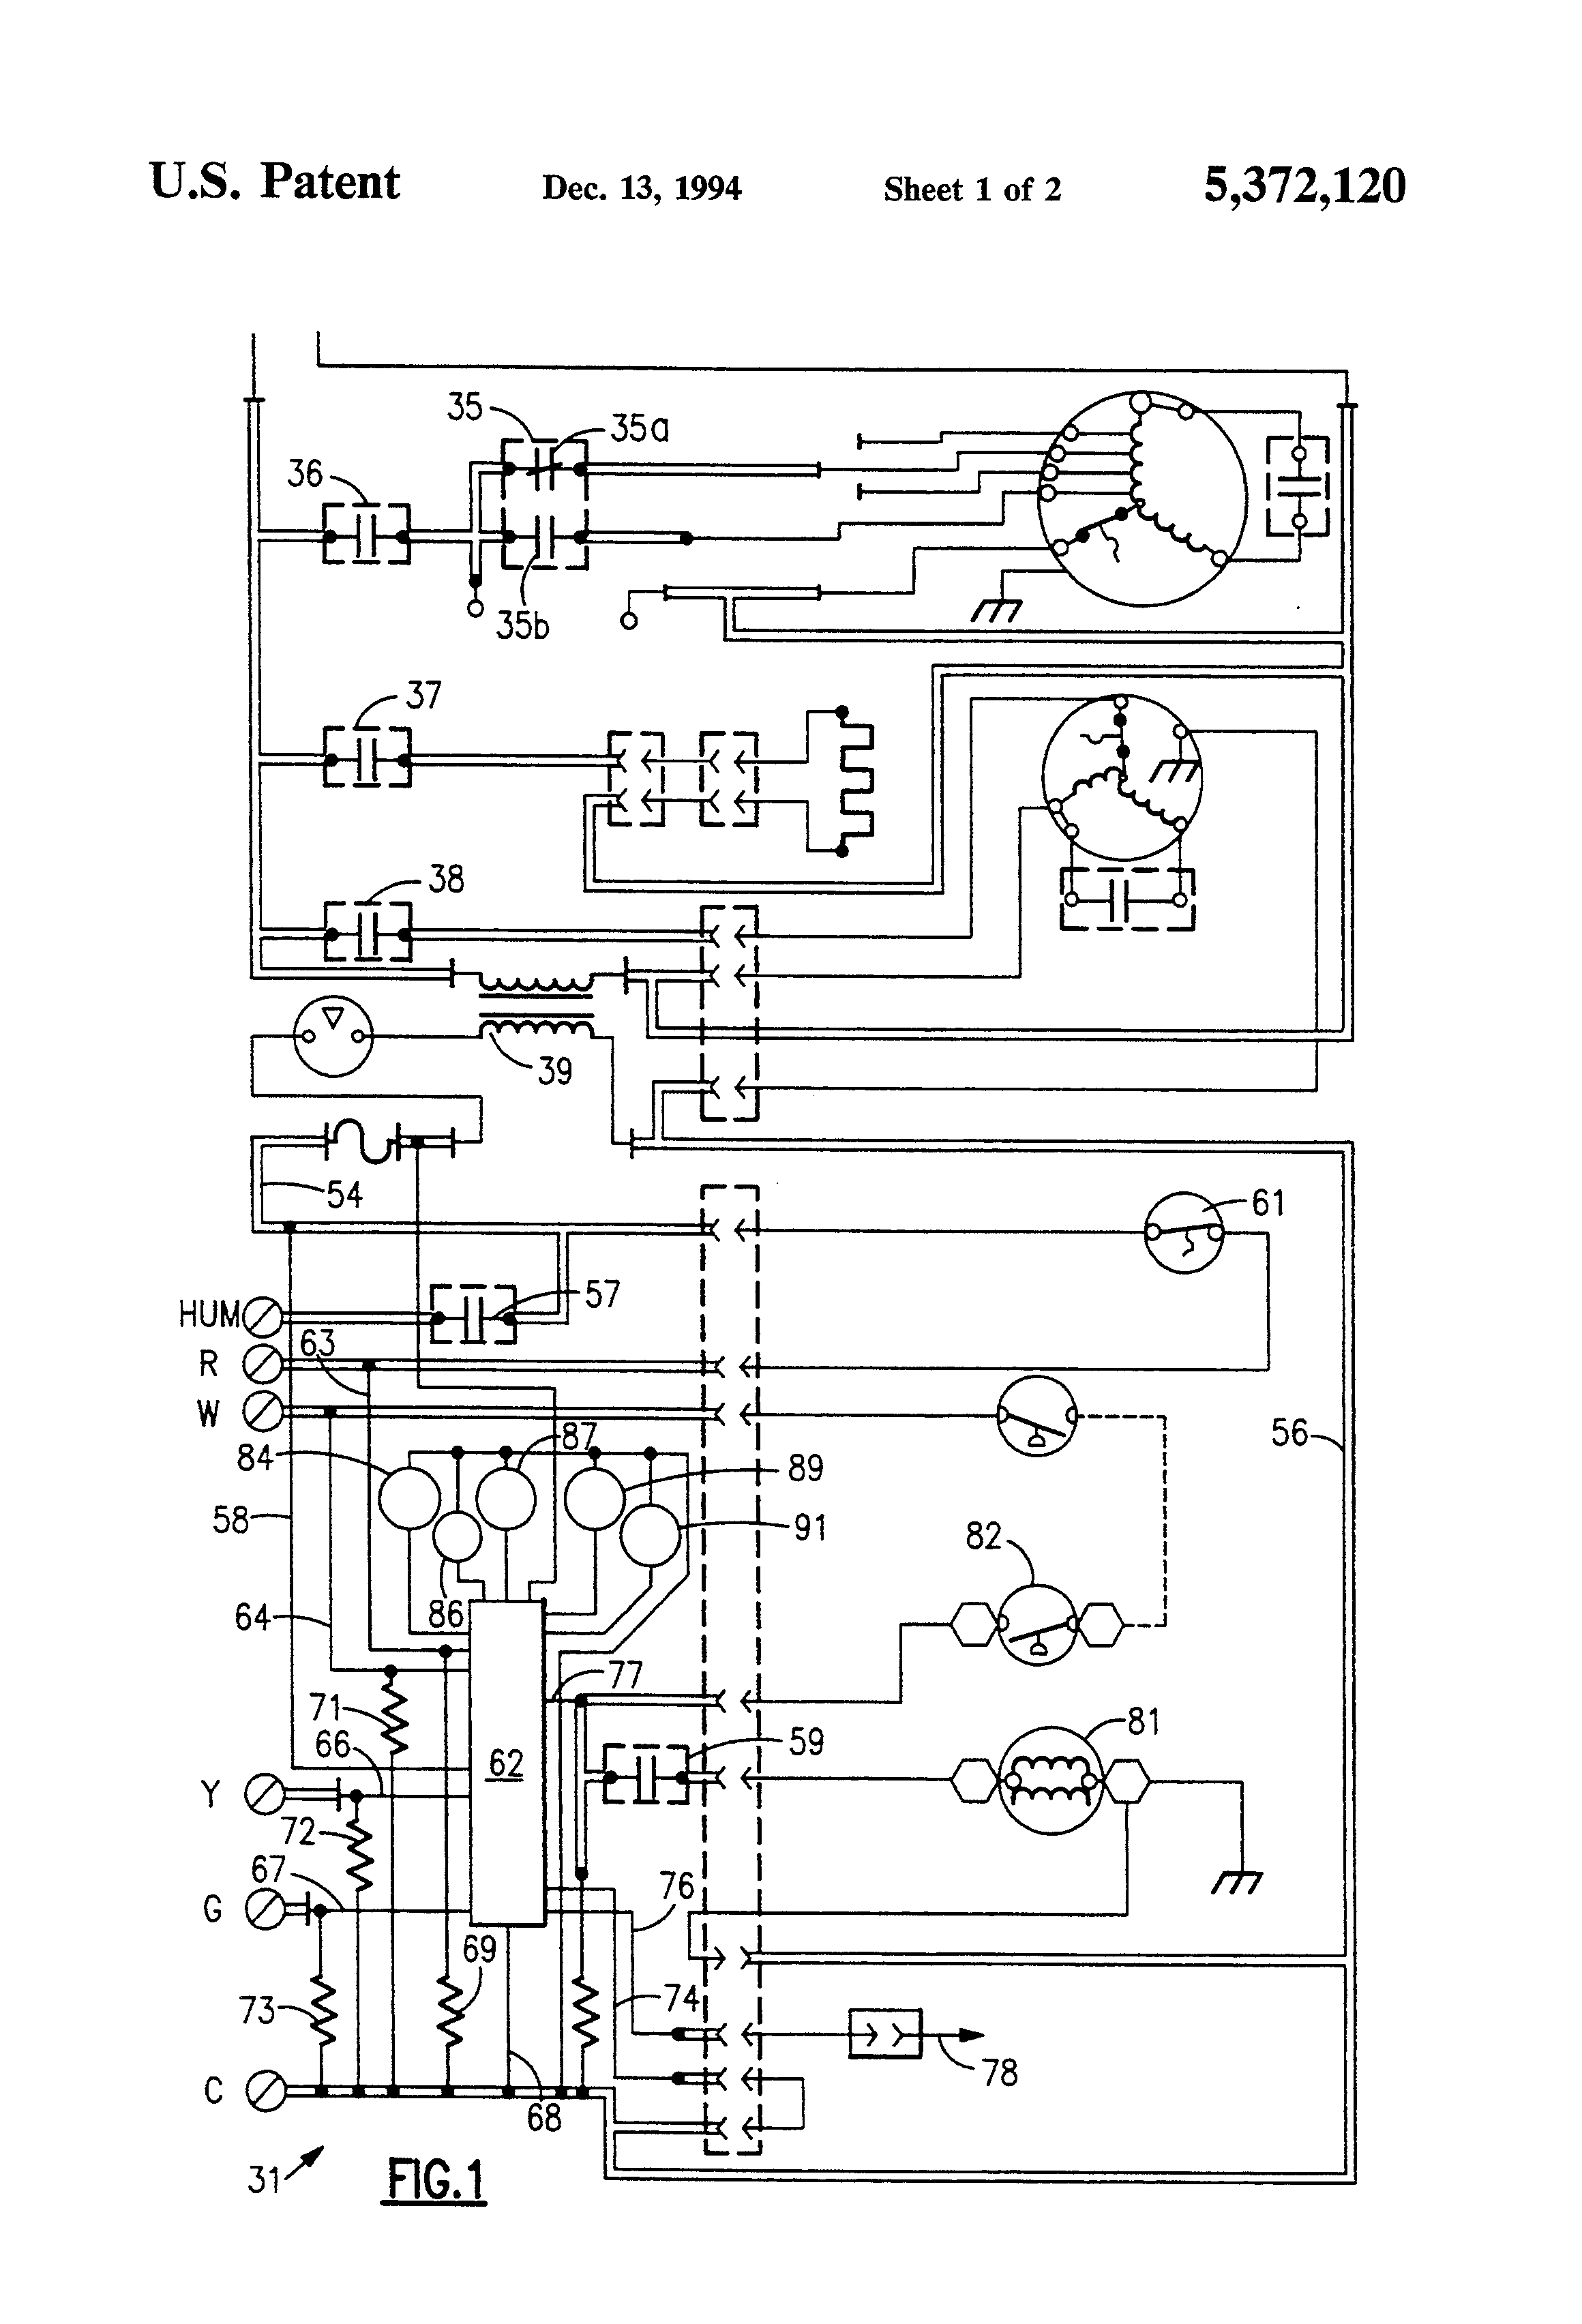 Wiring Diagram For Heil Heat Pump